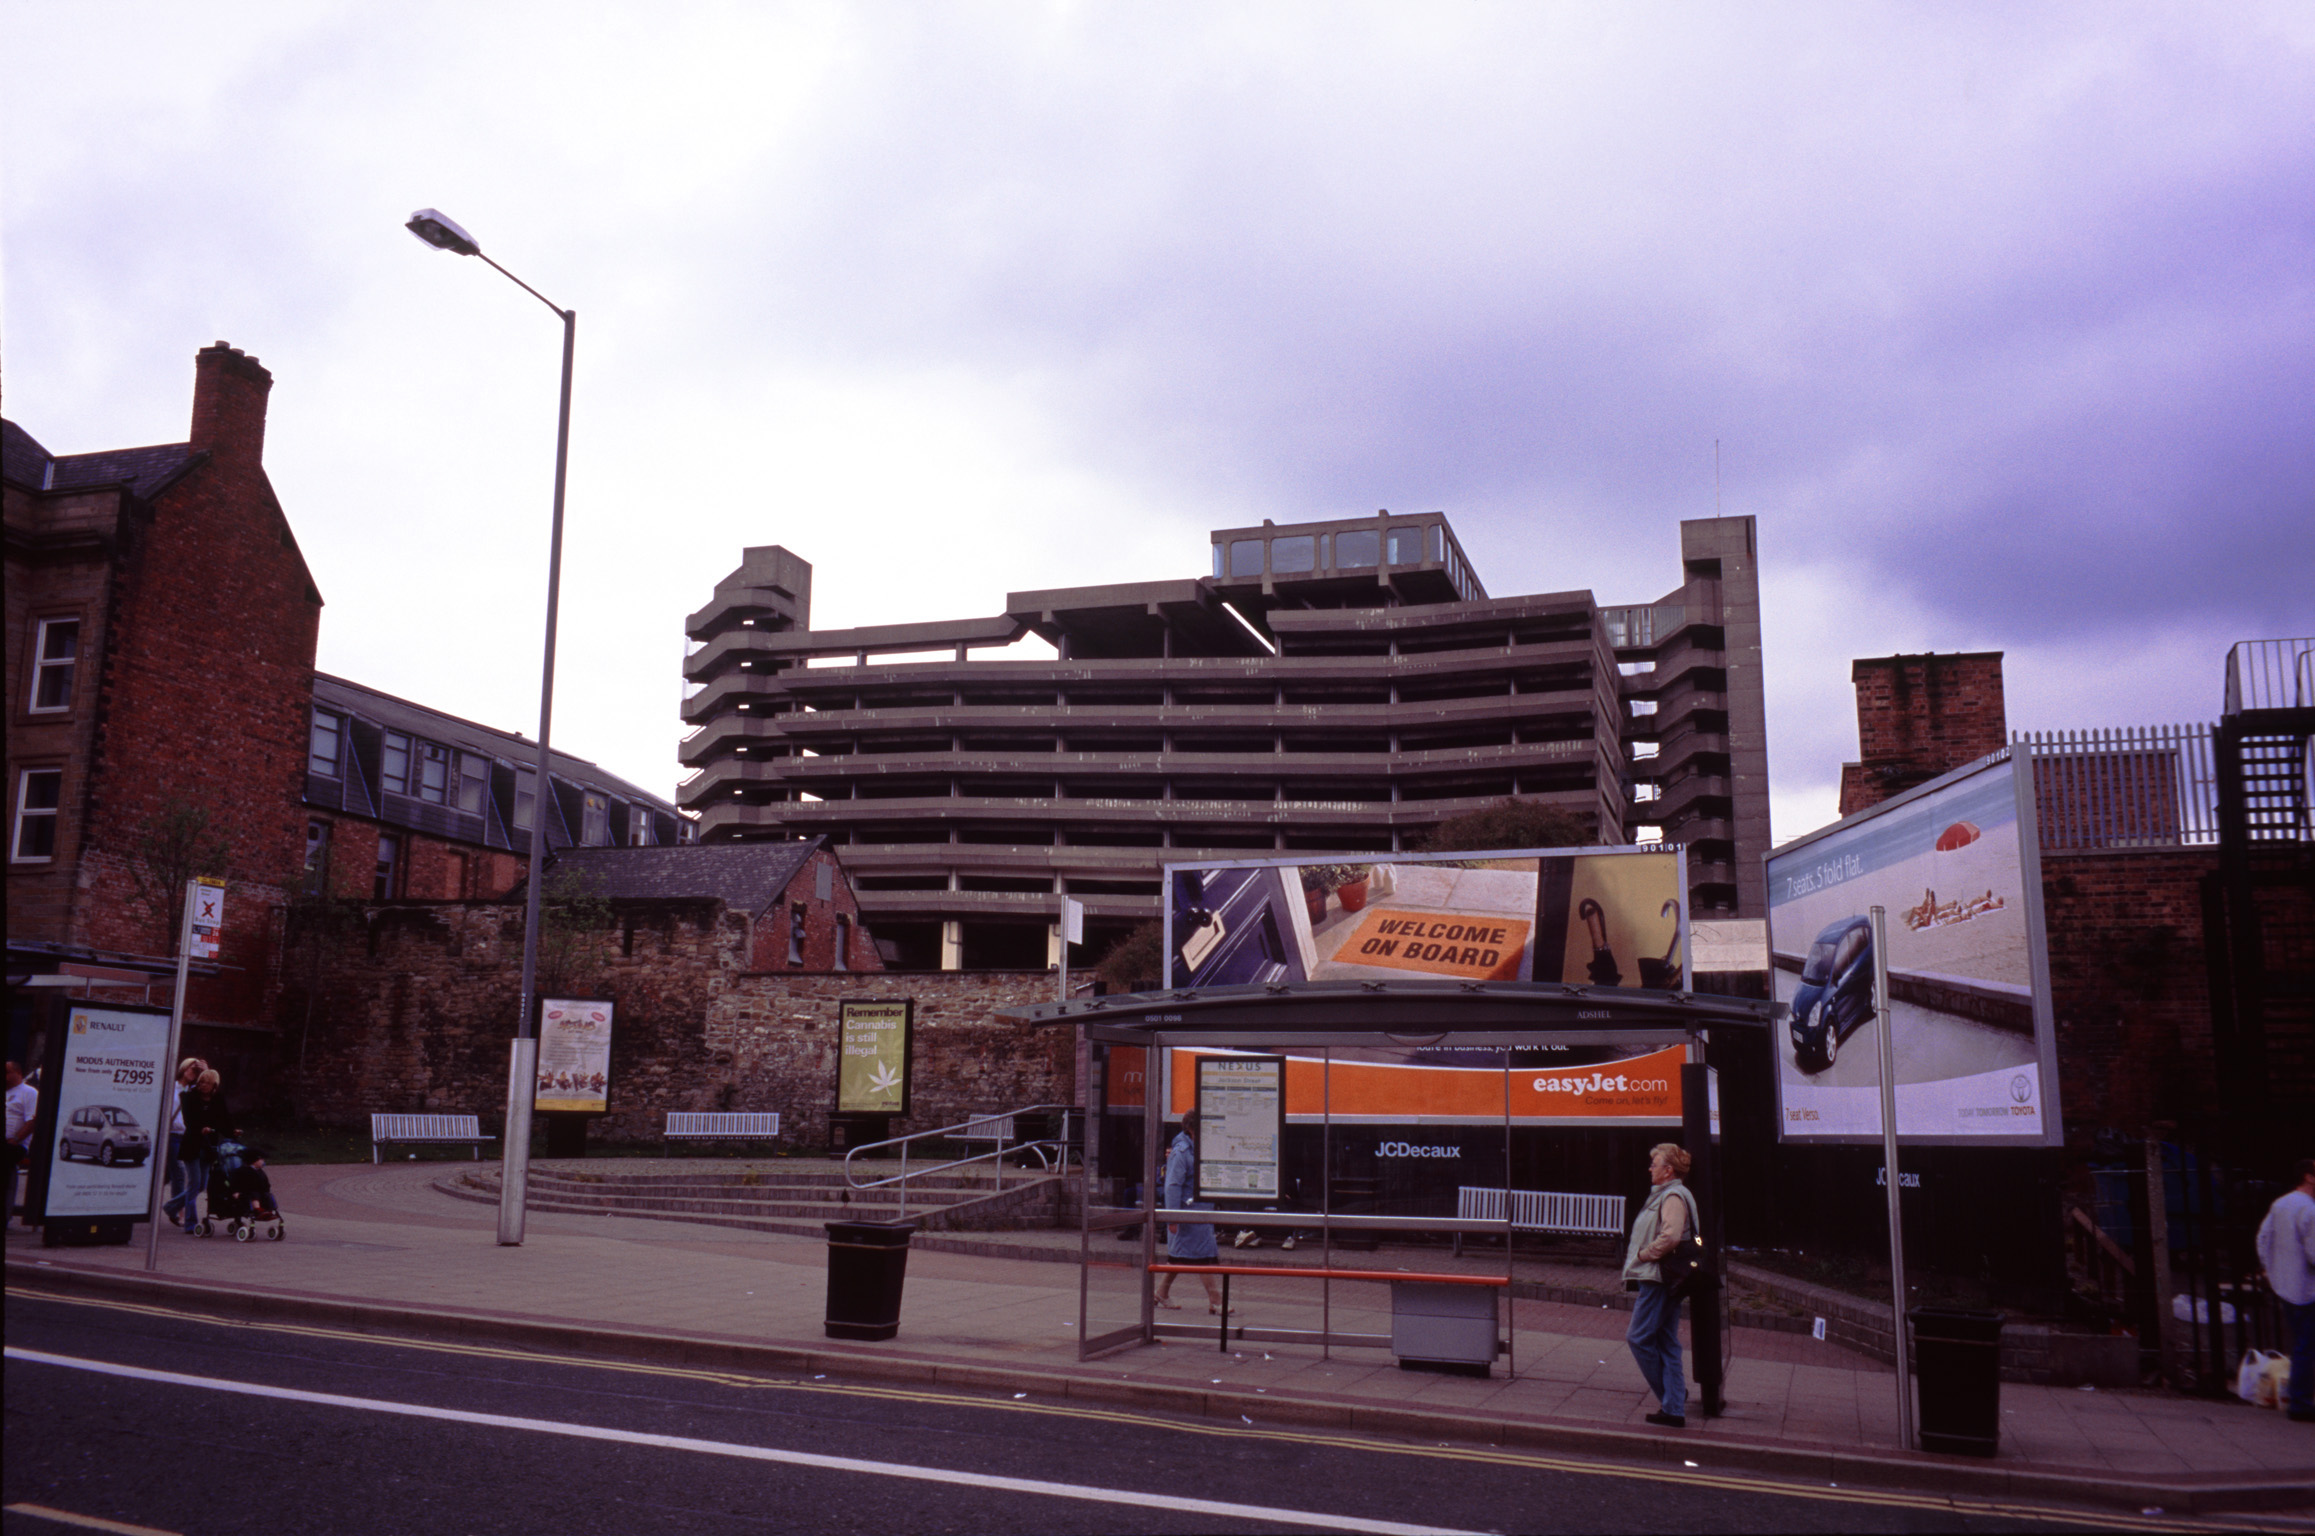 Exterior View of Architectural Building of Trinity Shopping Centre Along the Street in England.